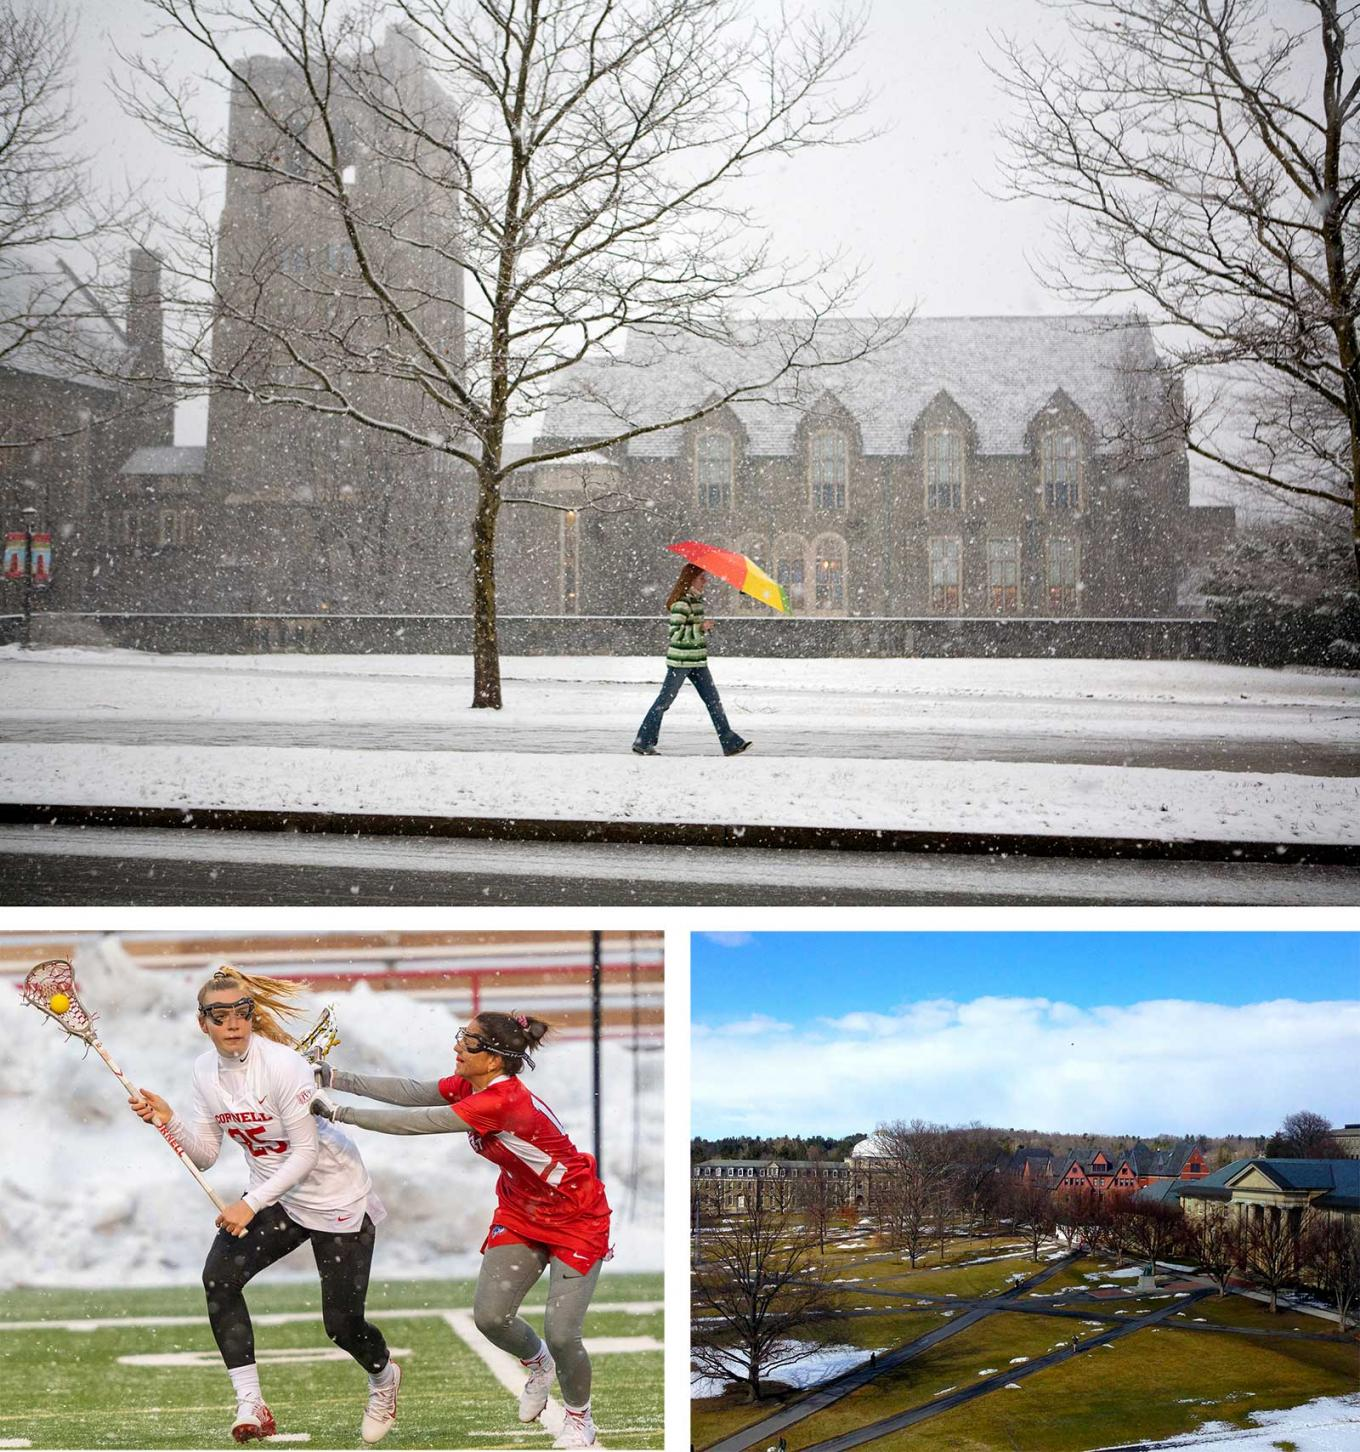 A lone student walks along a snowy quad. Two women play field hokey. An aerial view of the arts quad.